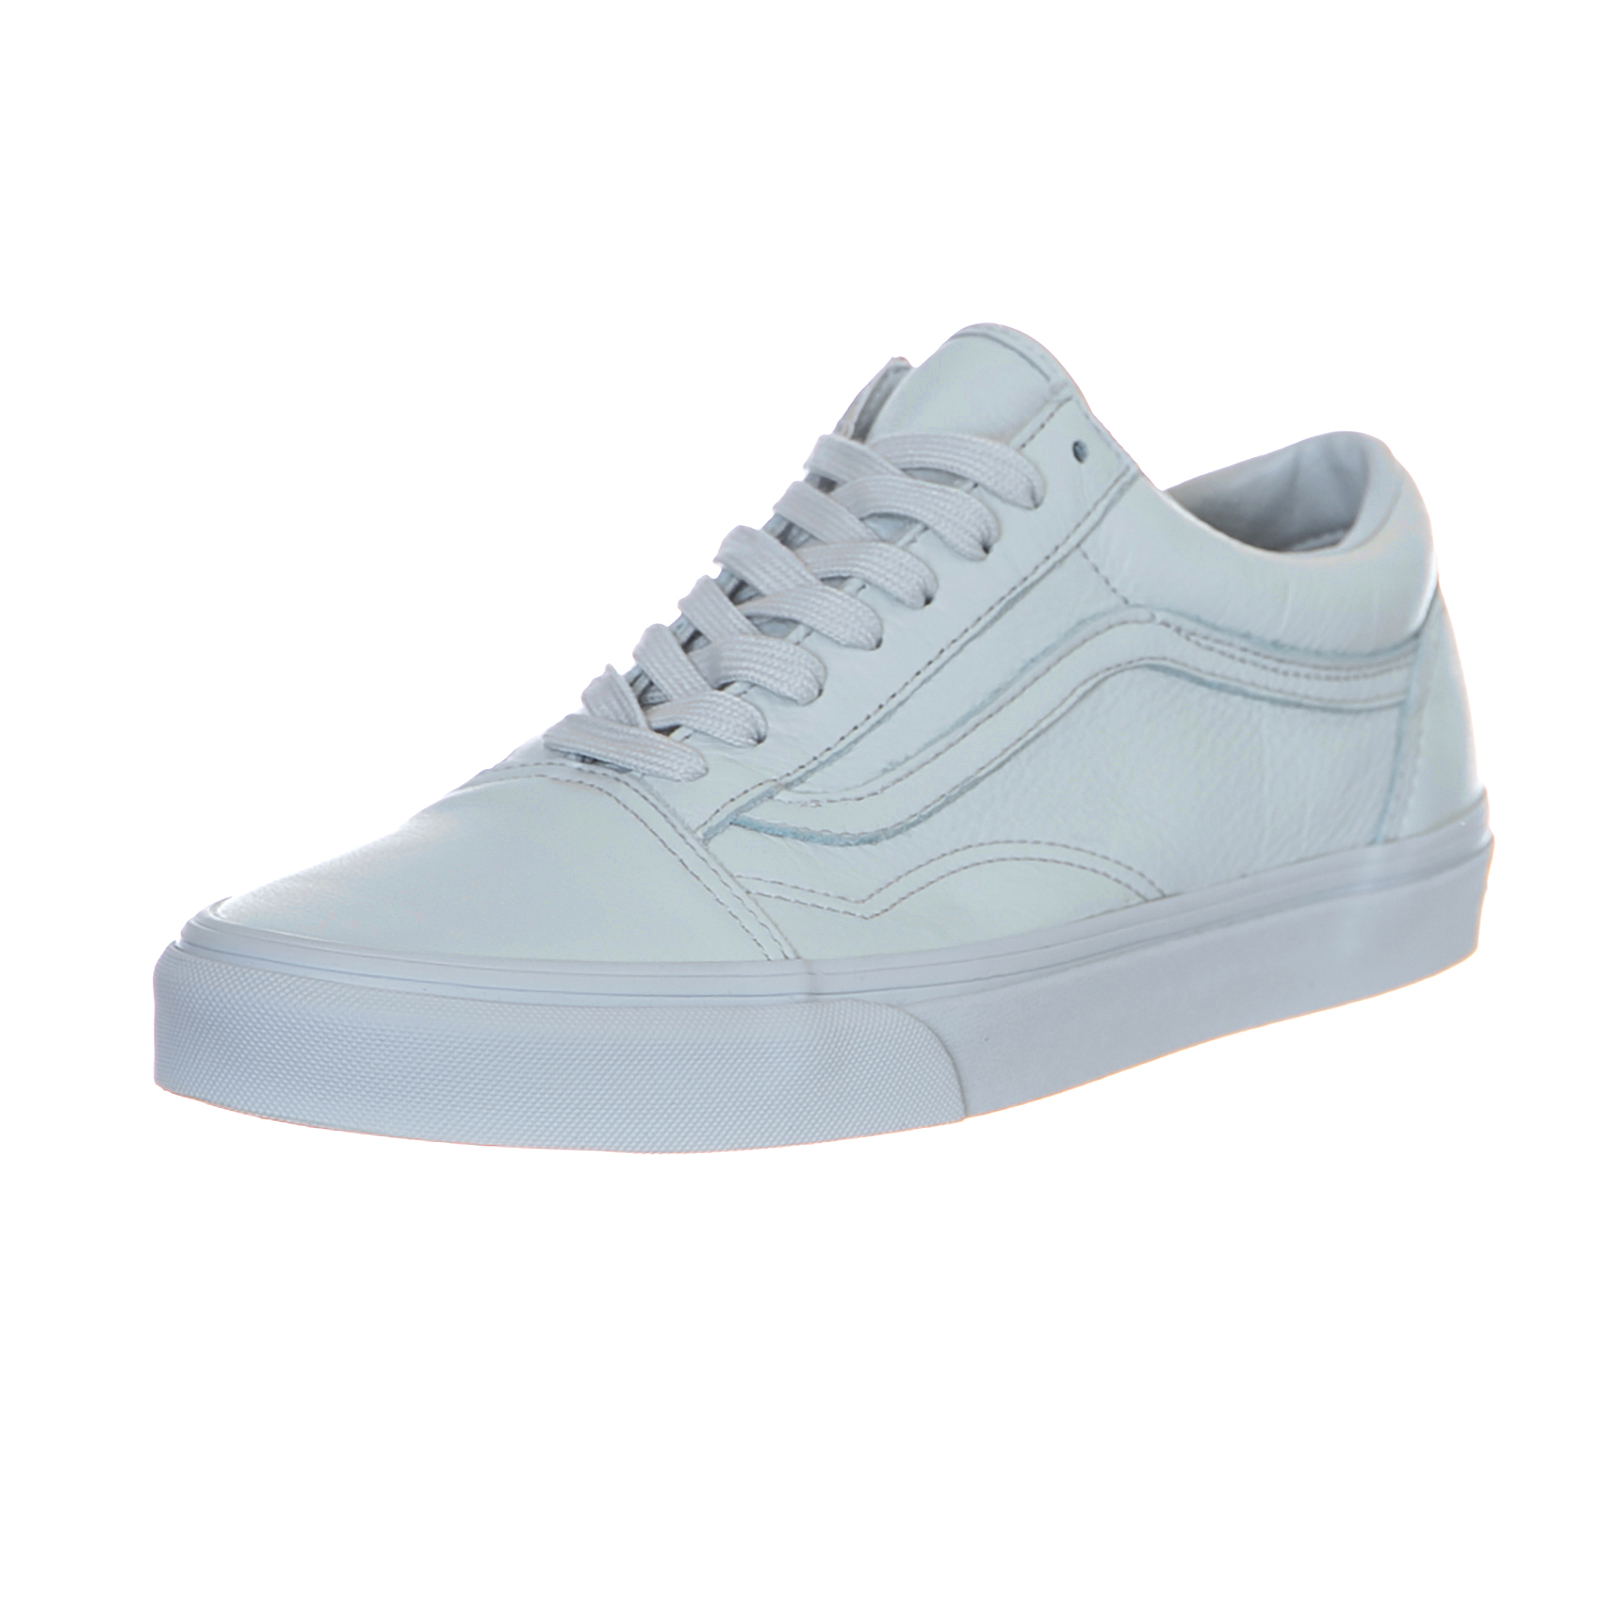 edc6957a67879 Vans Sneakers Ua Old Skool (Leather) Mo Azzurro 925d62 ...